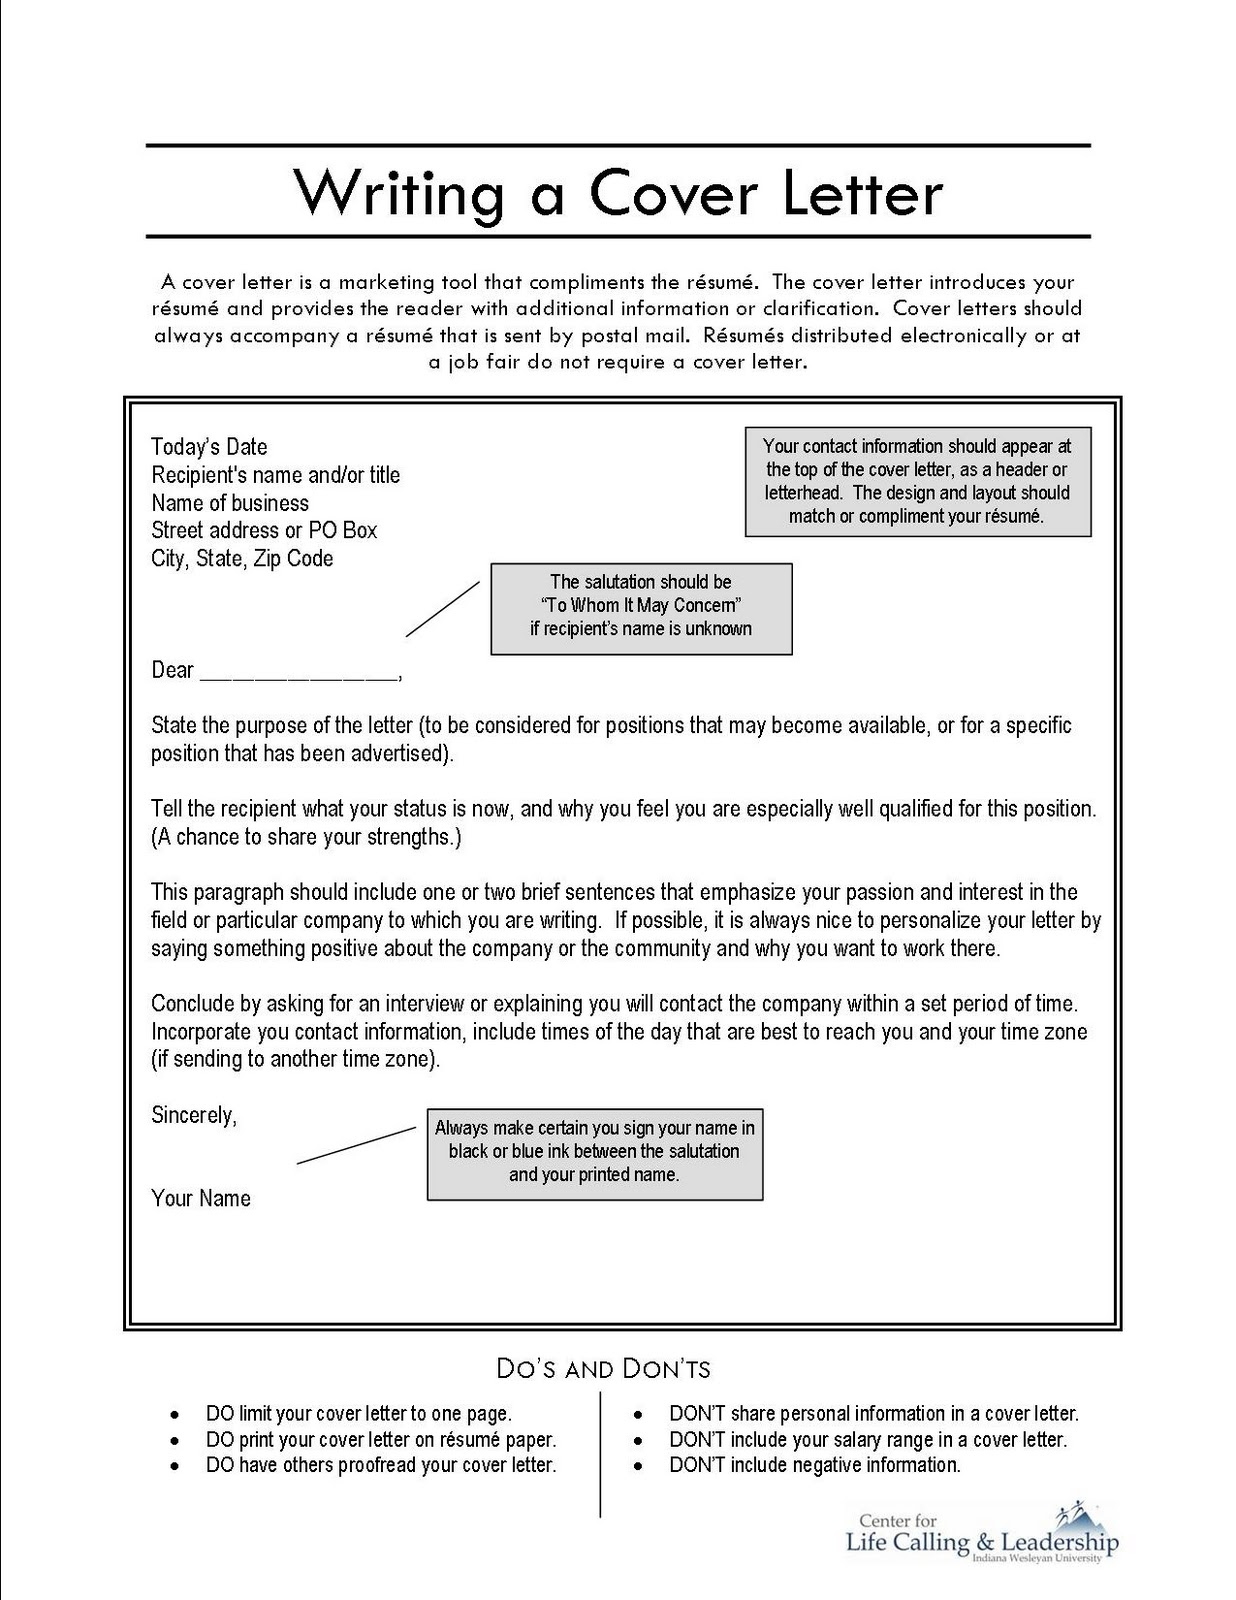 How to write a letter of interest for a job letter of interest cover letter sample with salary requirements cover letter salary altavistaventures Images